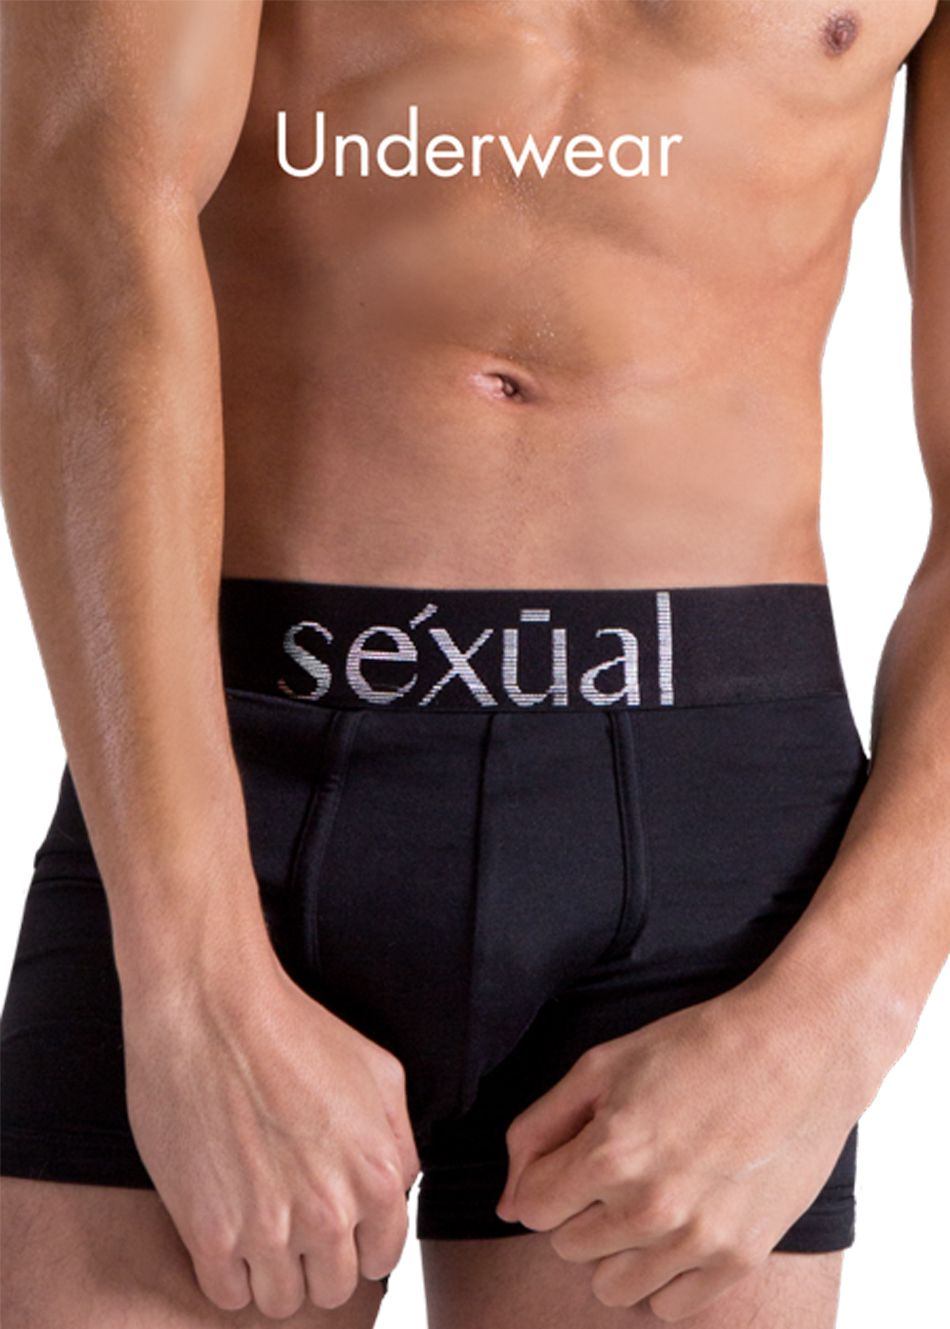 Michel Germain Sexual Underwear Collection